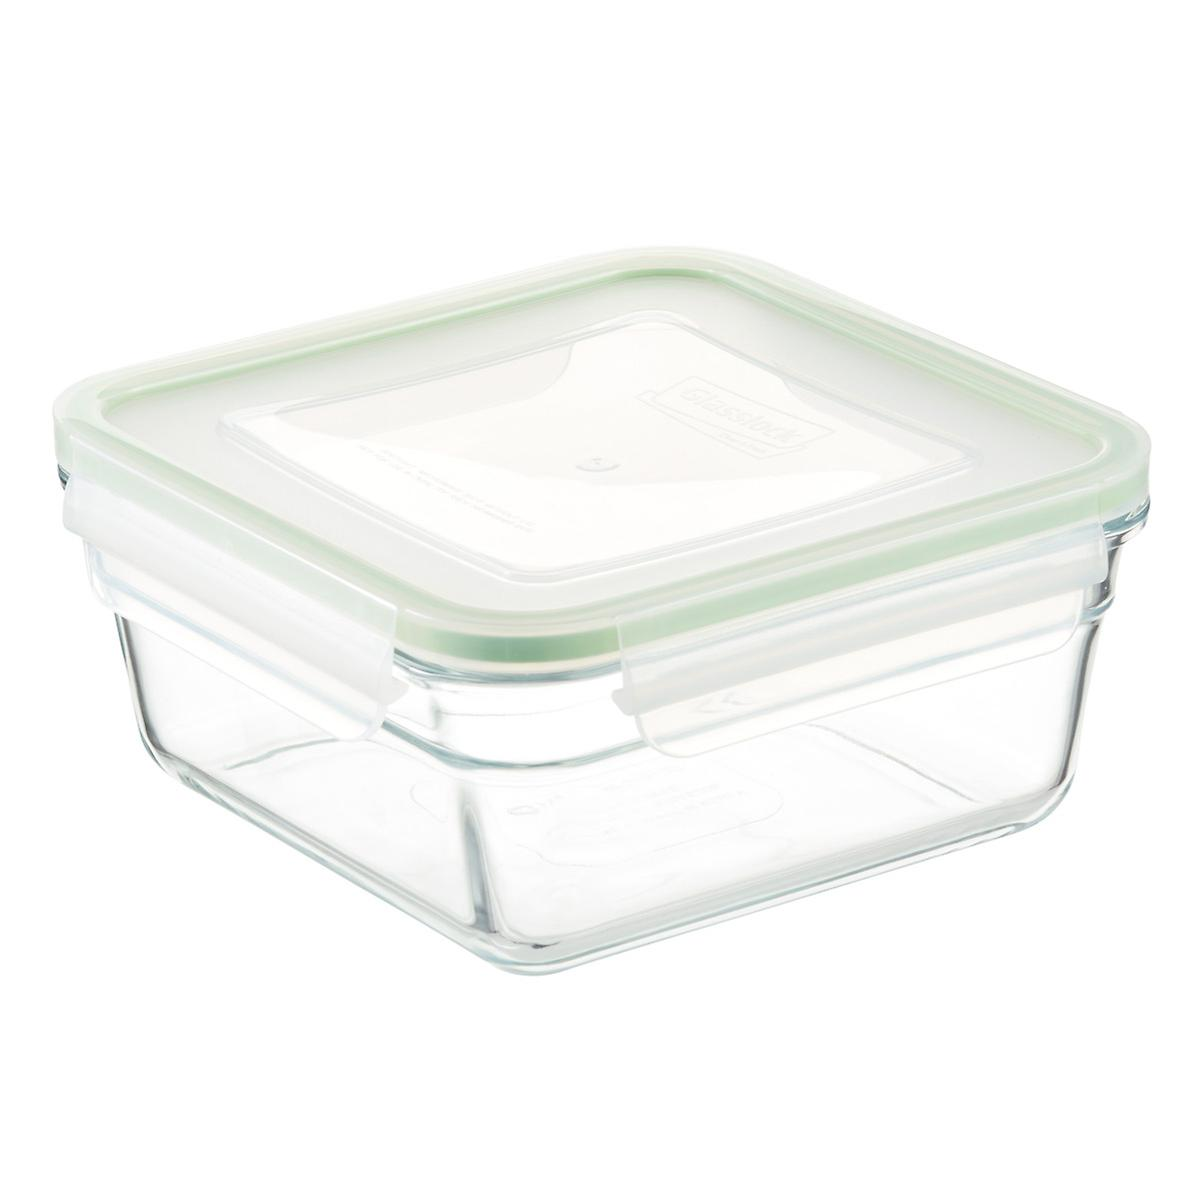 Glasslock Square Food Containers With Lids The Container Store